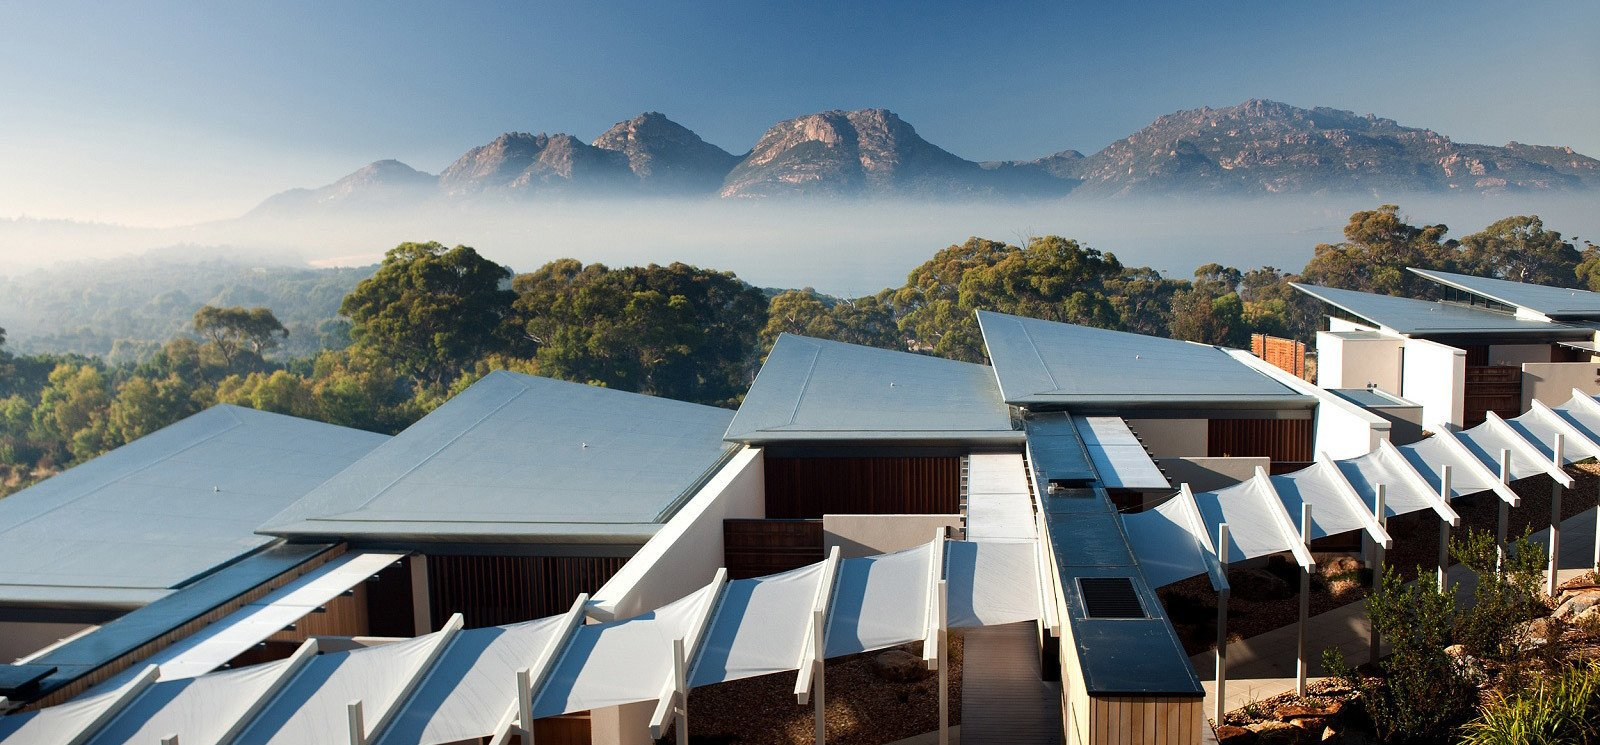 Photo 3 of 10 in This Modern Tasmanian Resort  Reflects the Natural Forms Surrounding It